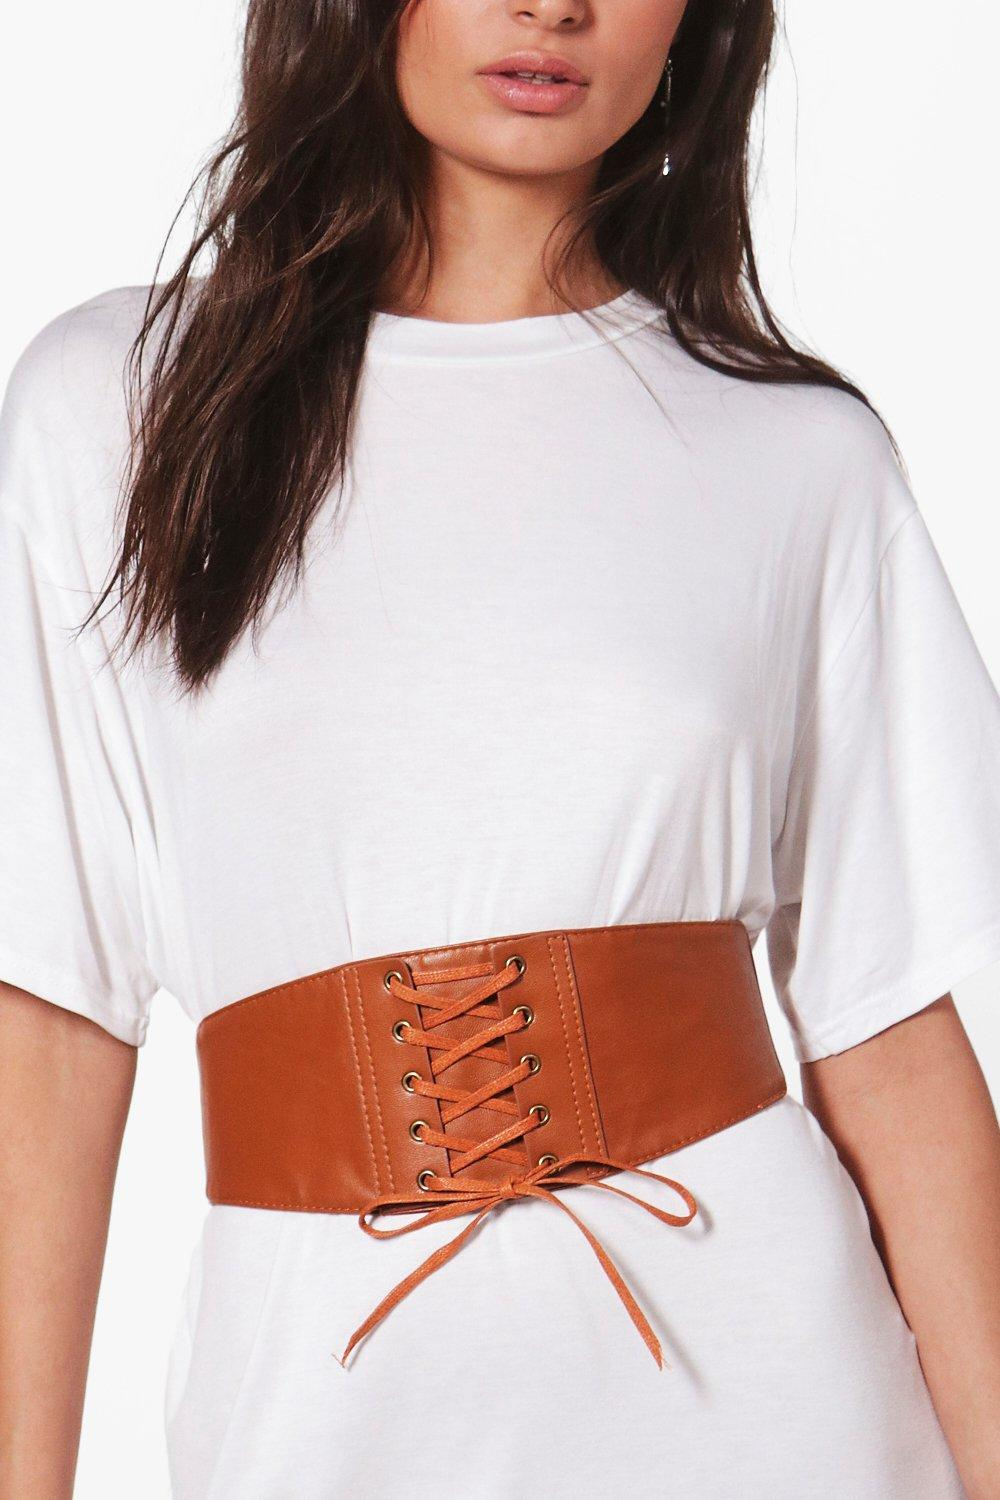 PU Lace Up Corset Belt - tan - Maisie PU Lace Up C